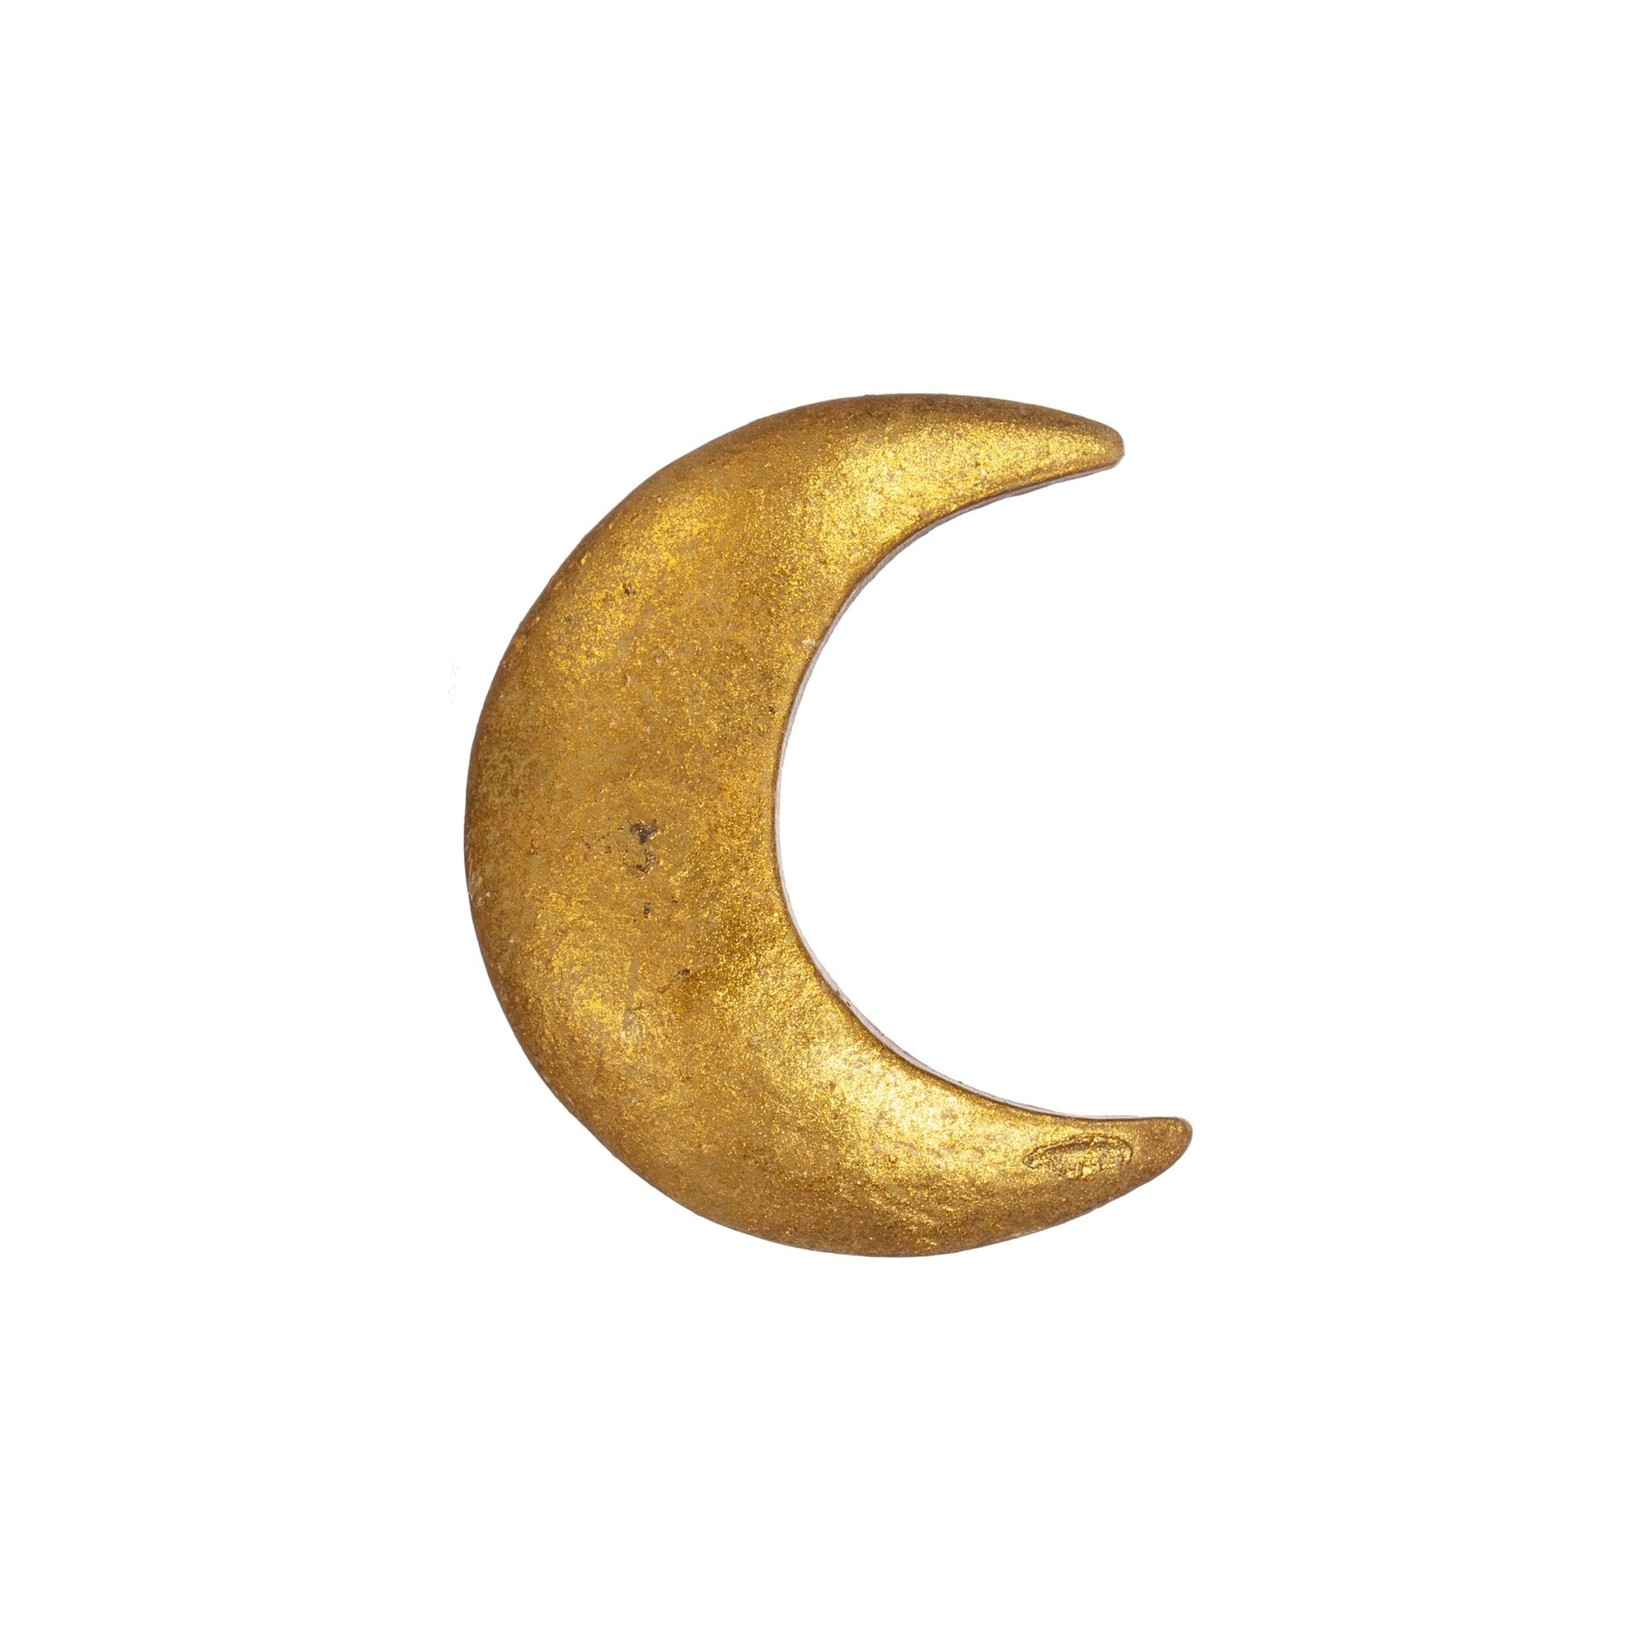 Sass and Belle Gold Crescent Moon Drawer Knob